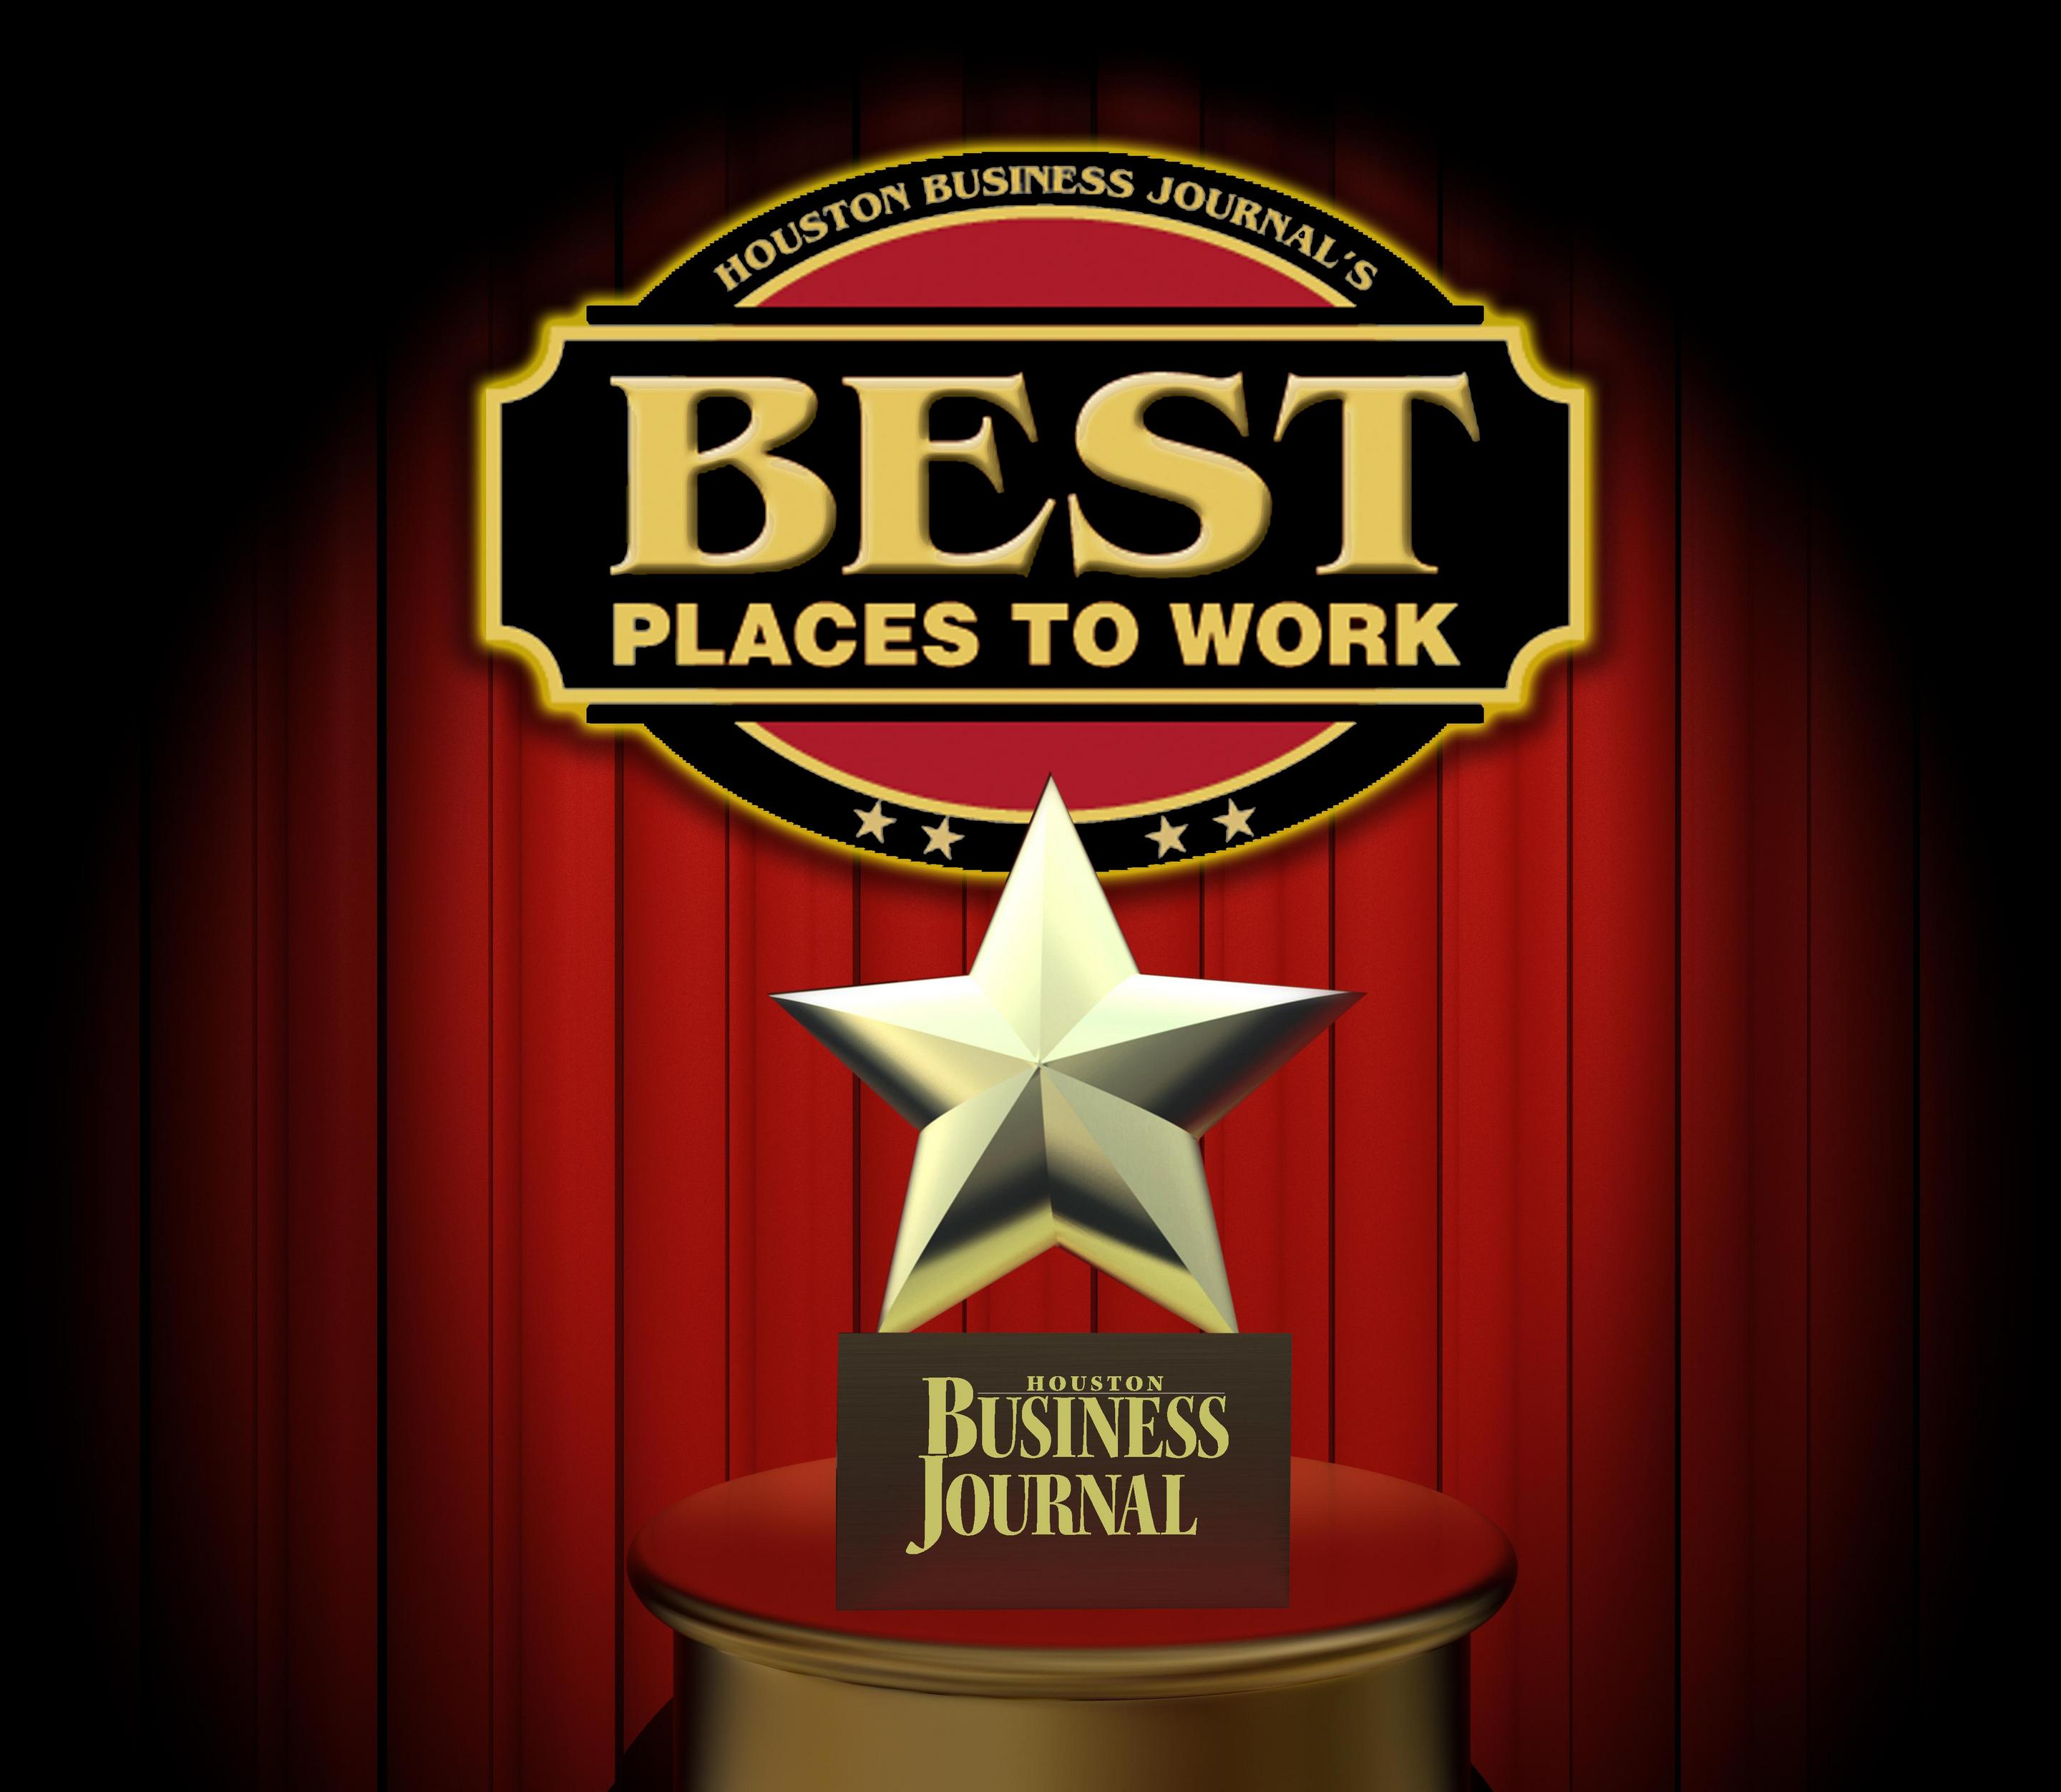 2014 Best Places to Work